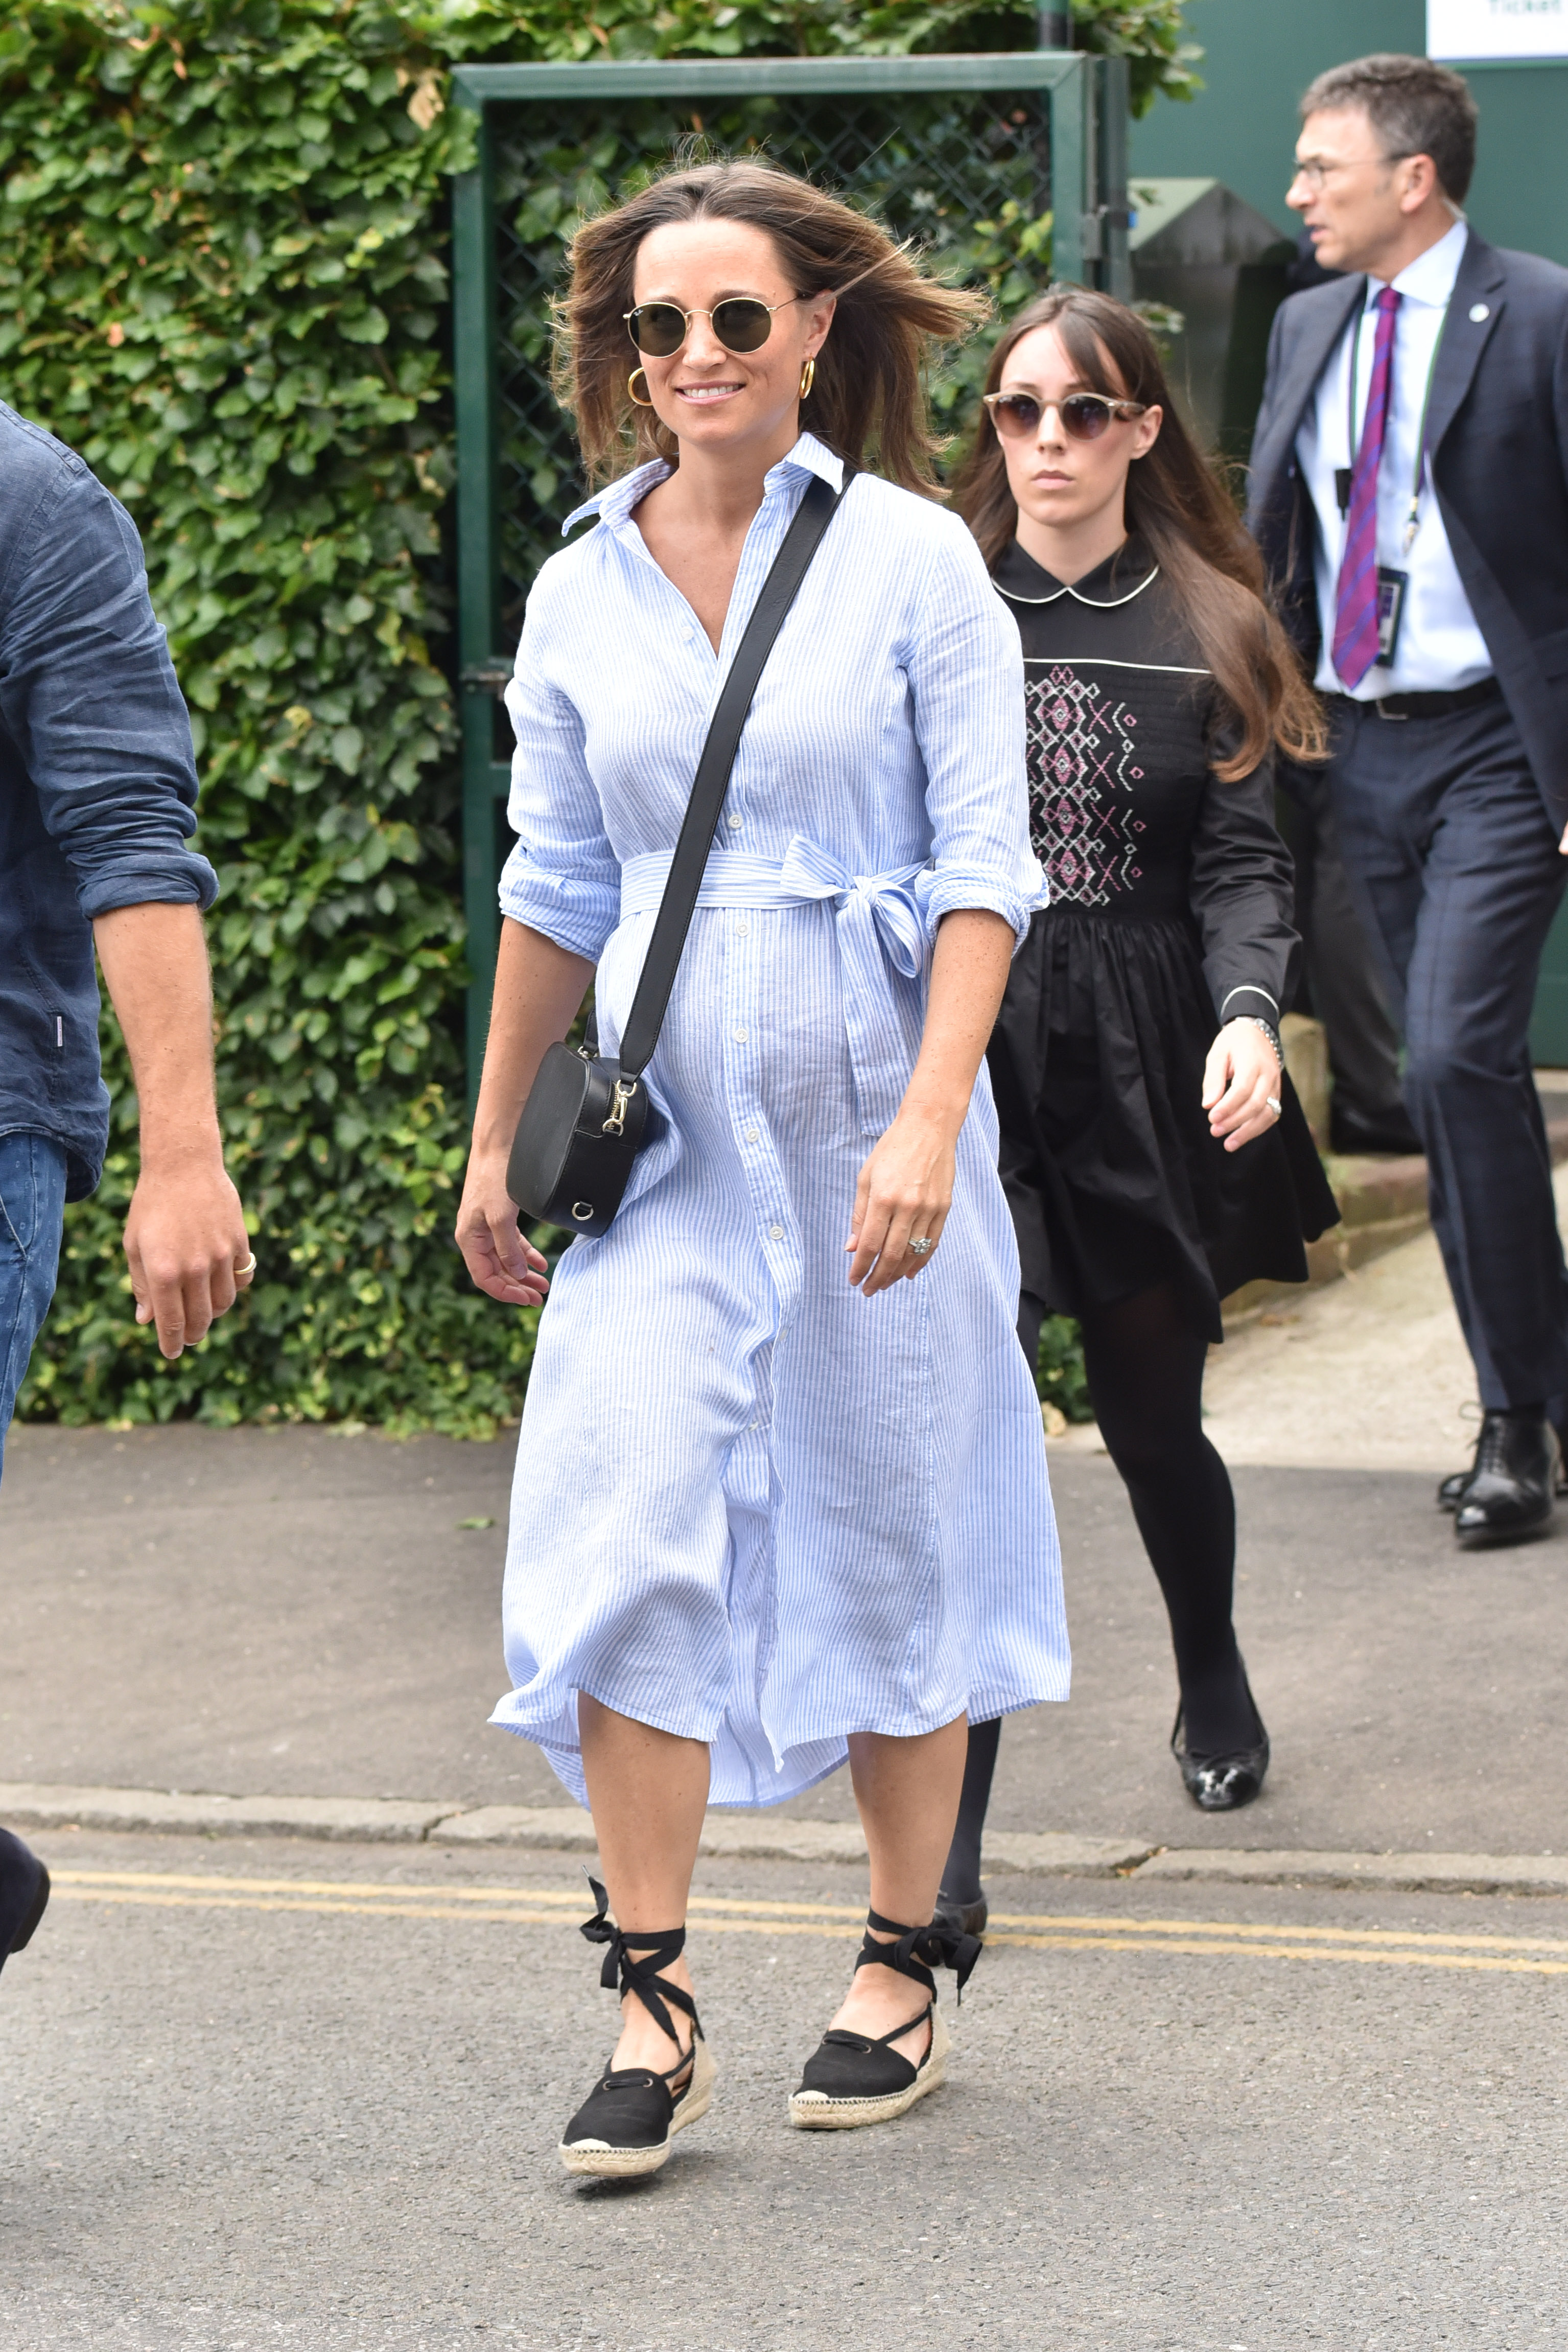 Pippa Middleton Photo (C) GETTY IMAGES